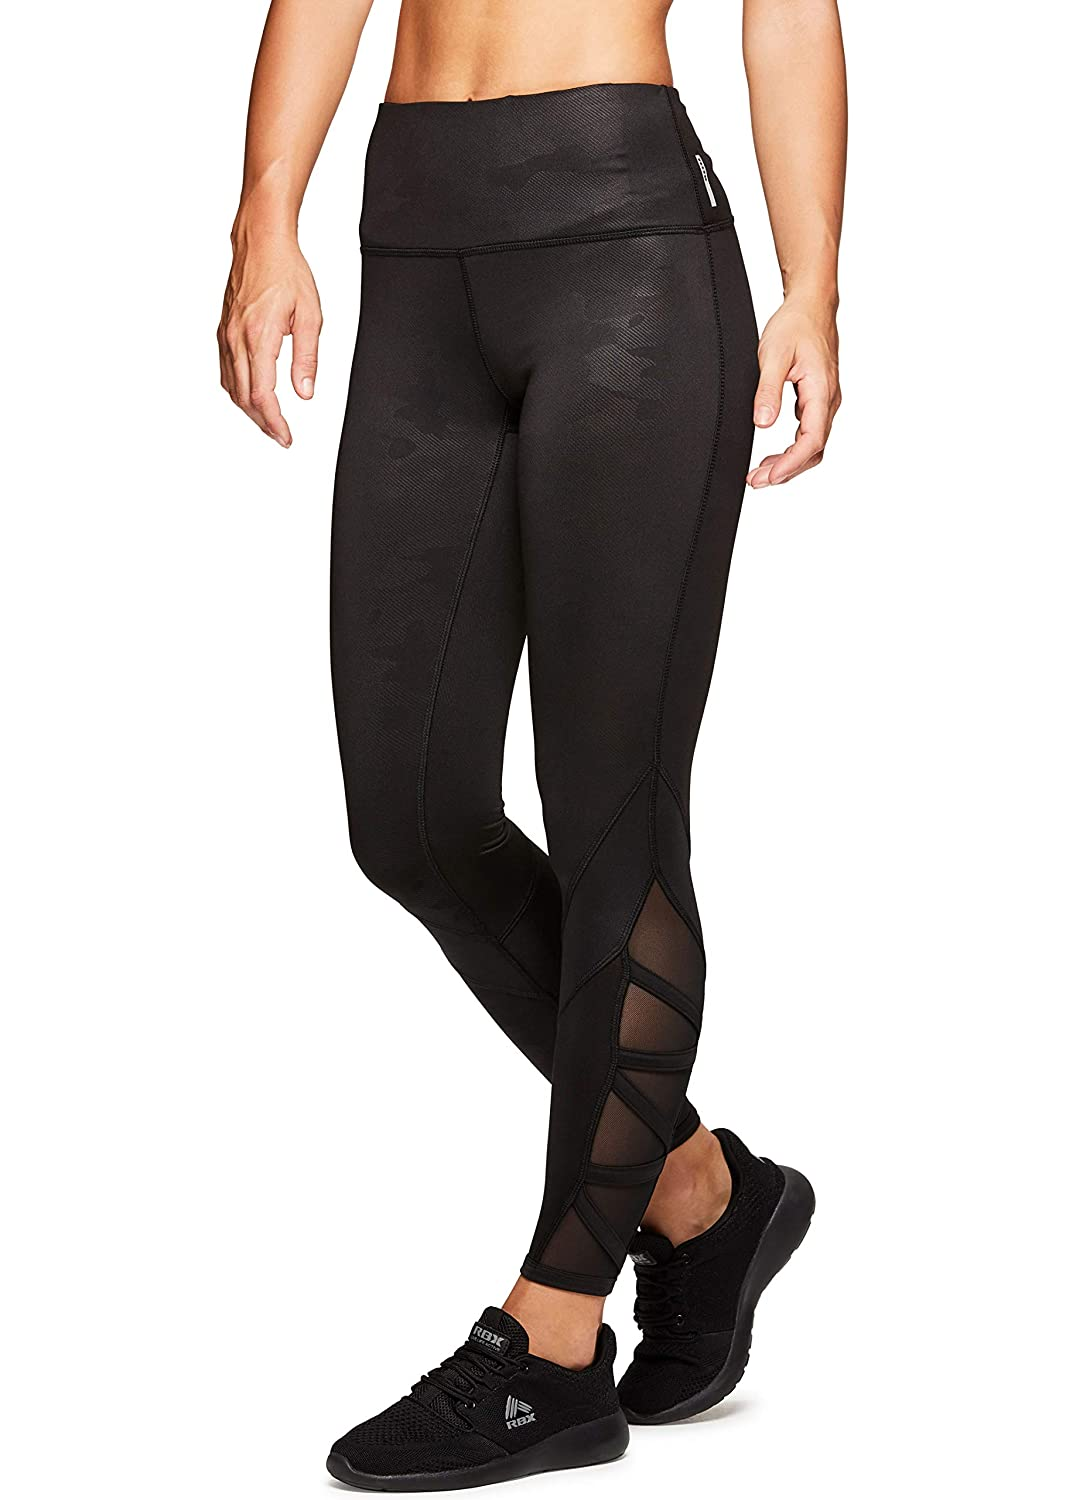 RBX Active Womens Workout Legging with Mesh Black